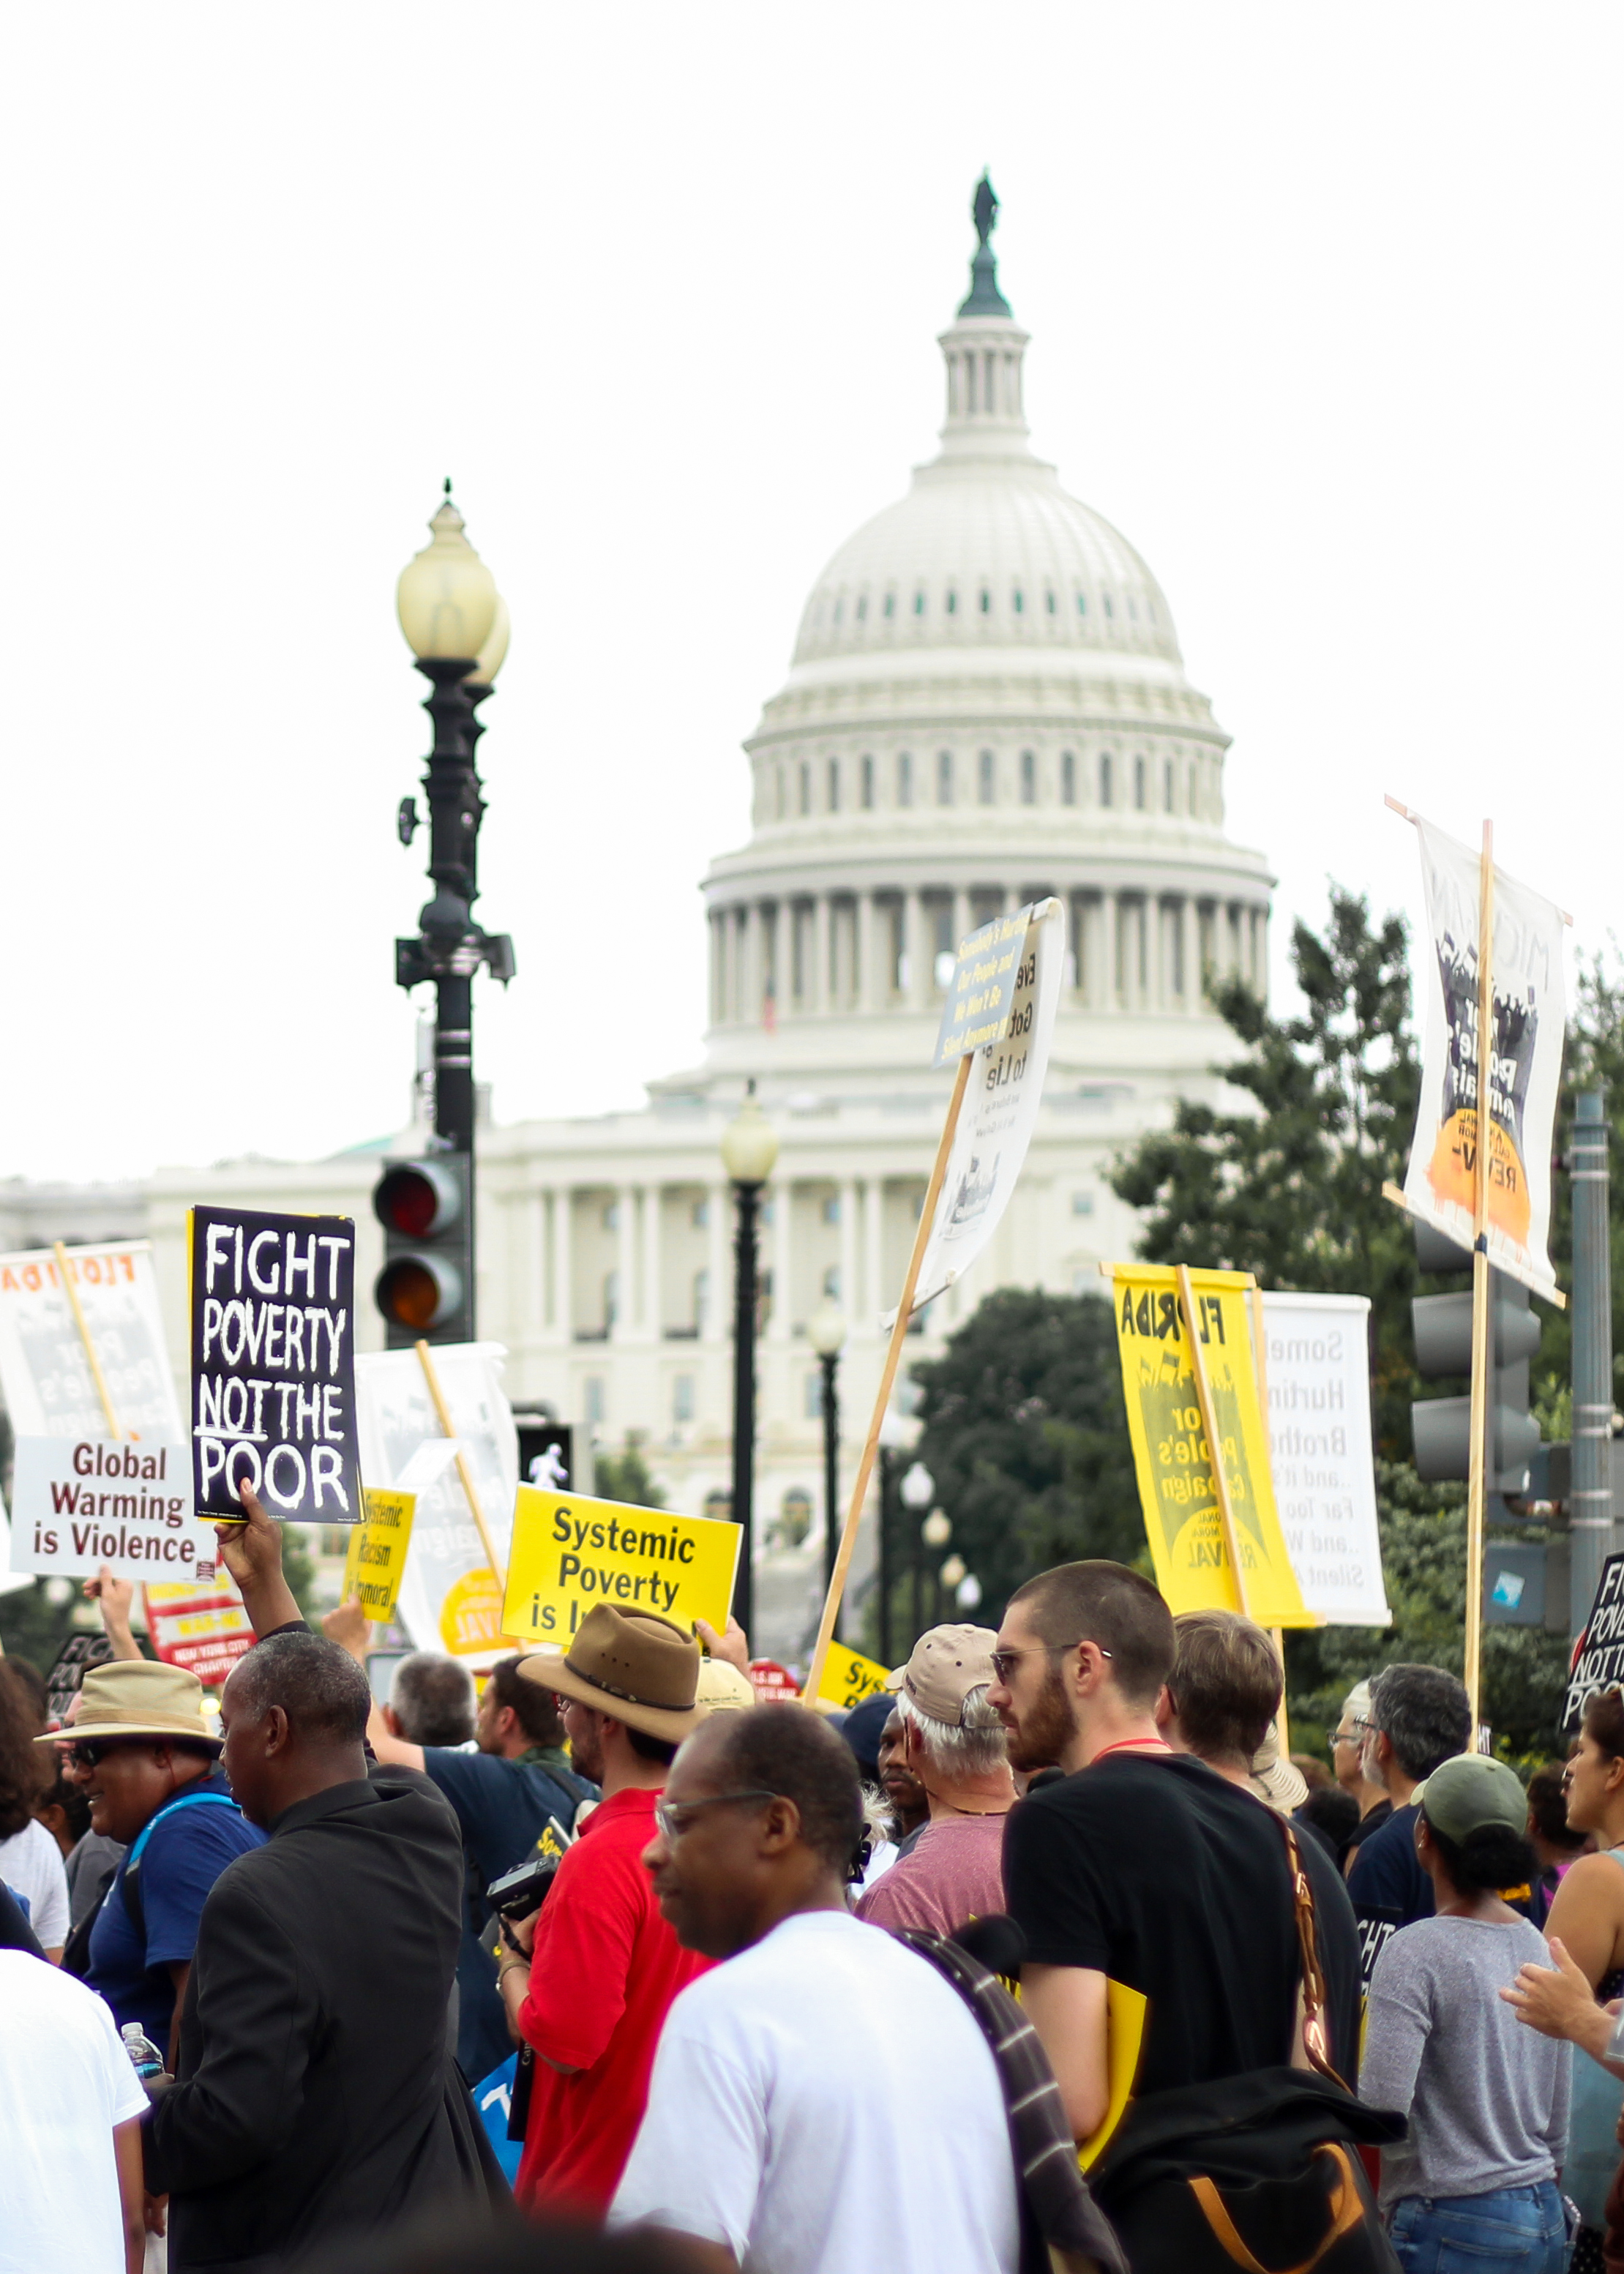 Poor People's Campaign June 23 2018 - Rally to Fight Poverty Not the Poor - Washington D.C.